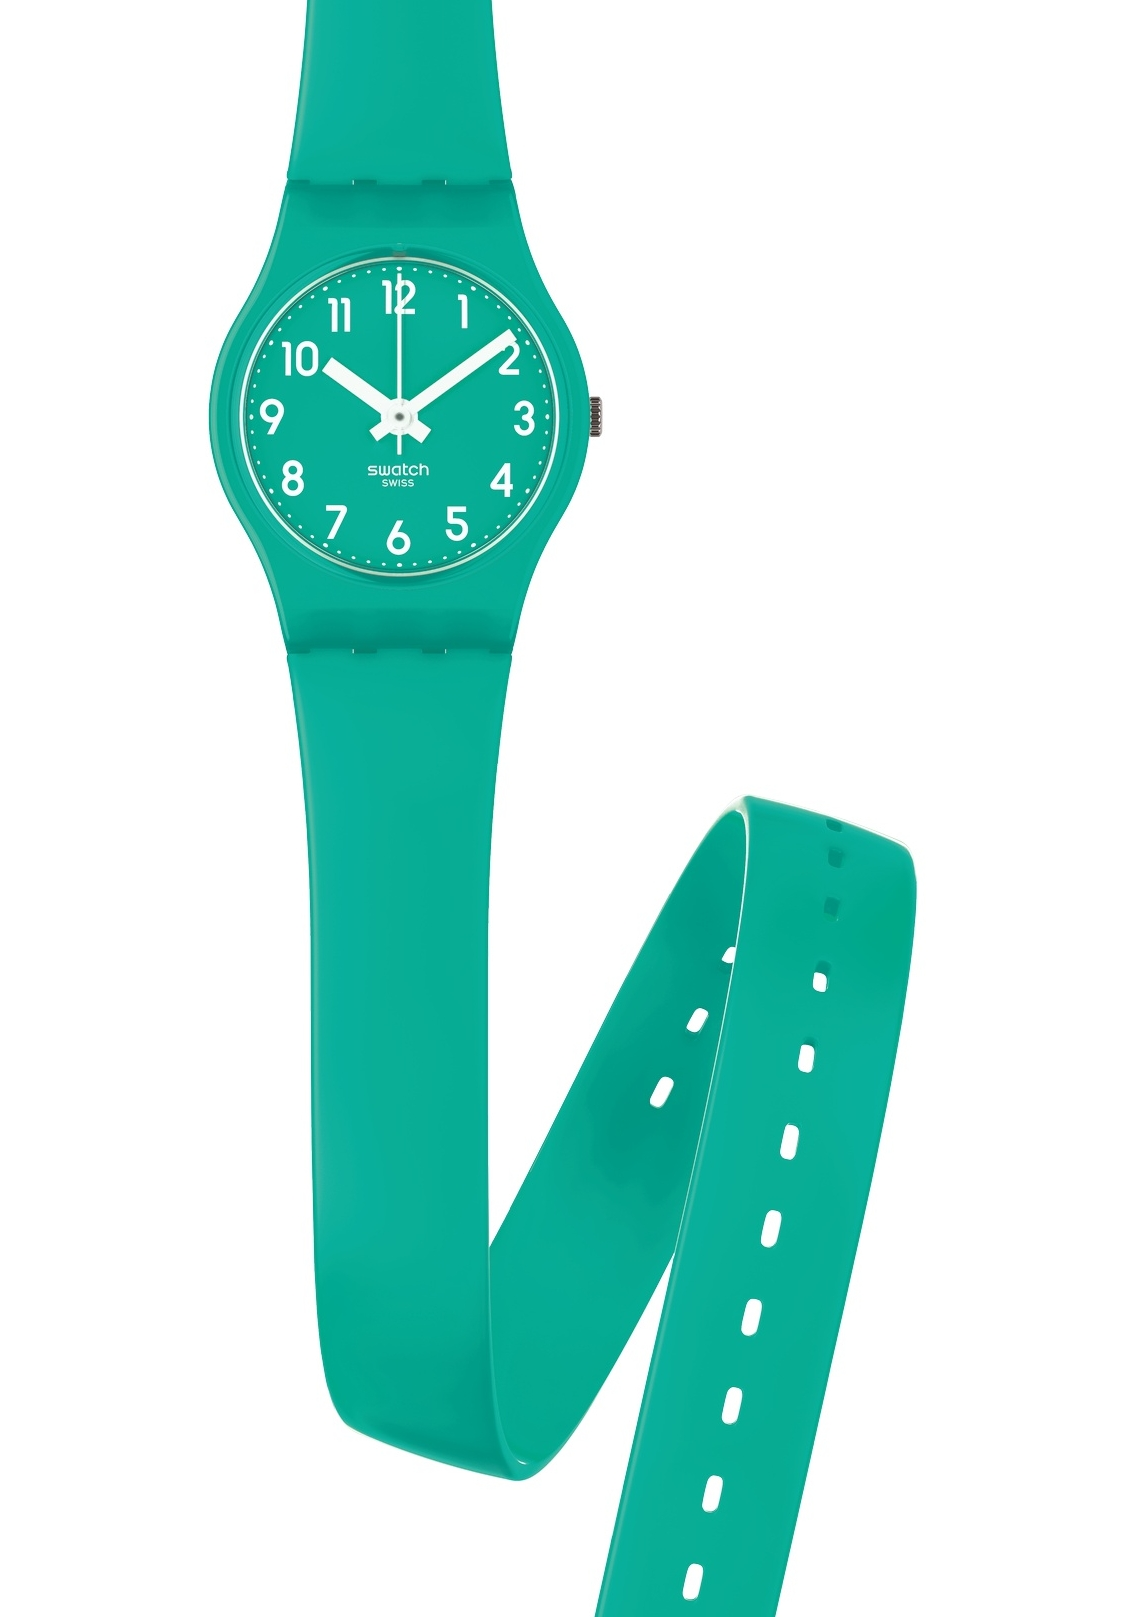 Damenuhr Wasserdicht Swatch Damenuhr Mint Leave Ll115 Nur 35,00